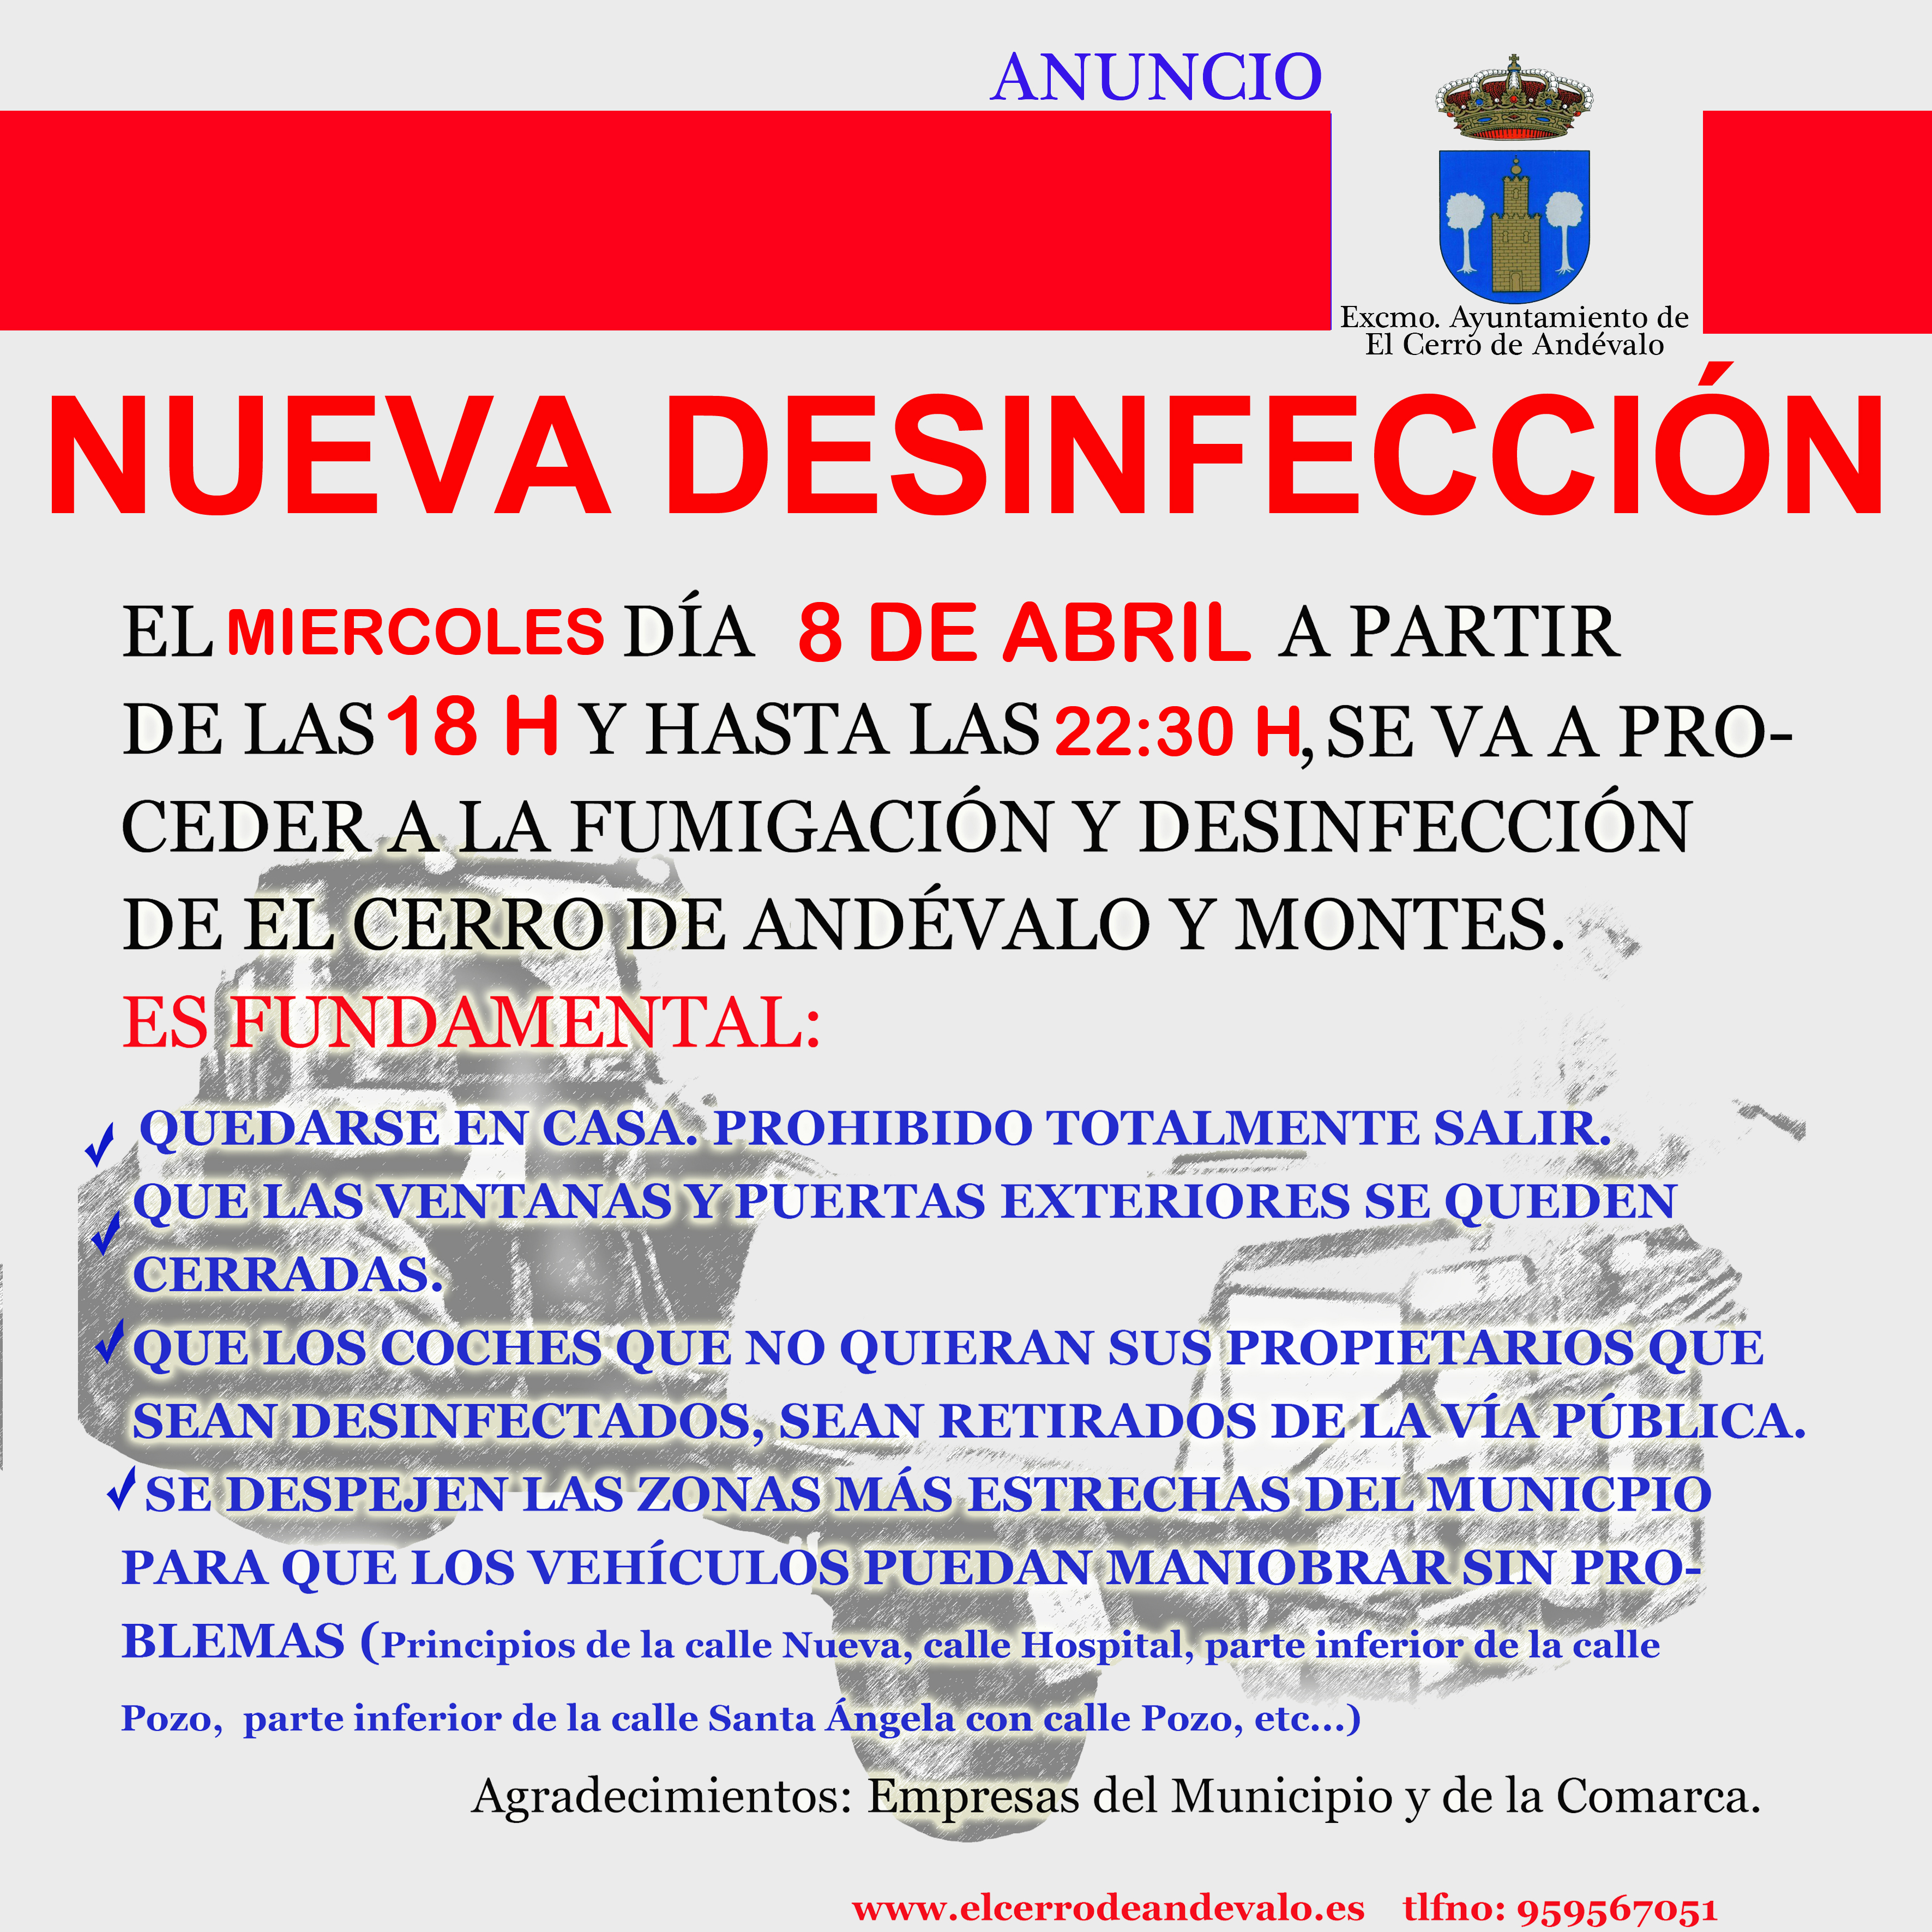 DESINFECCION dia 8 DE ABRIL